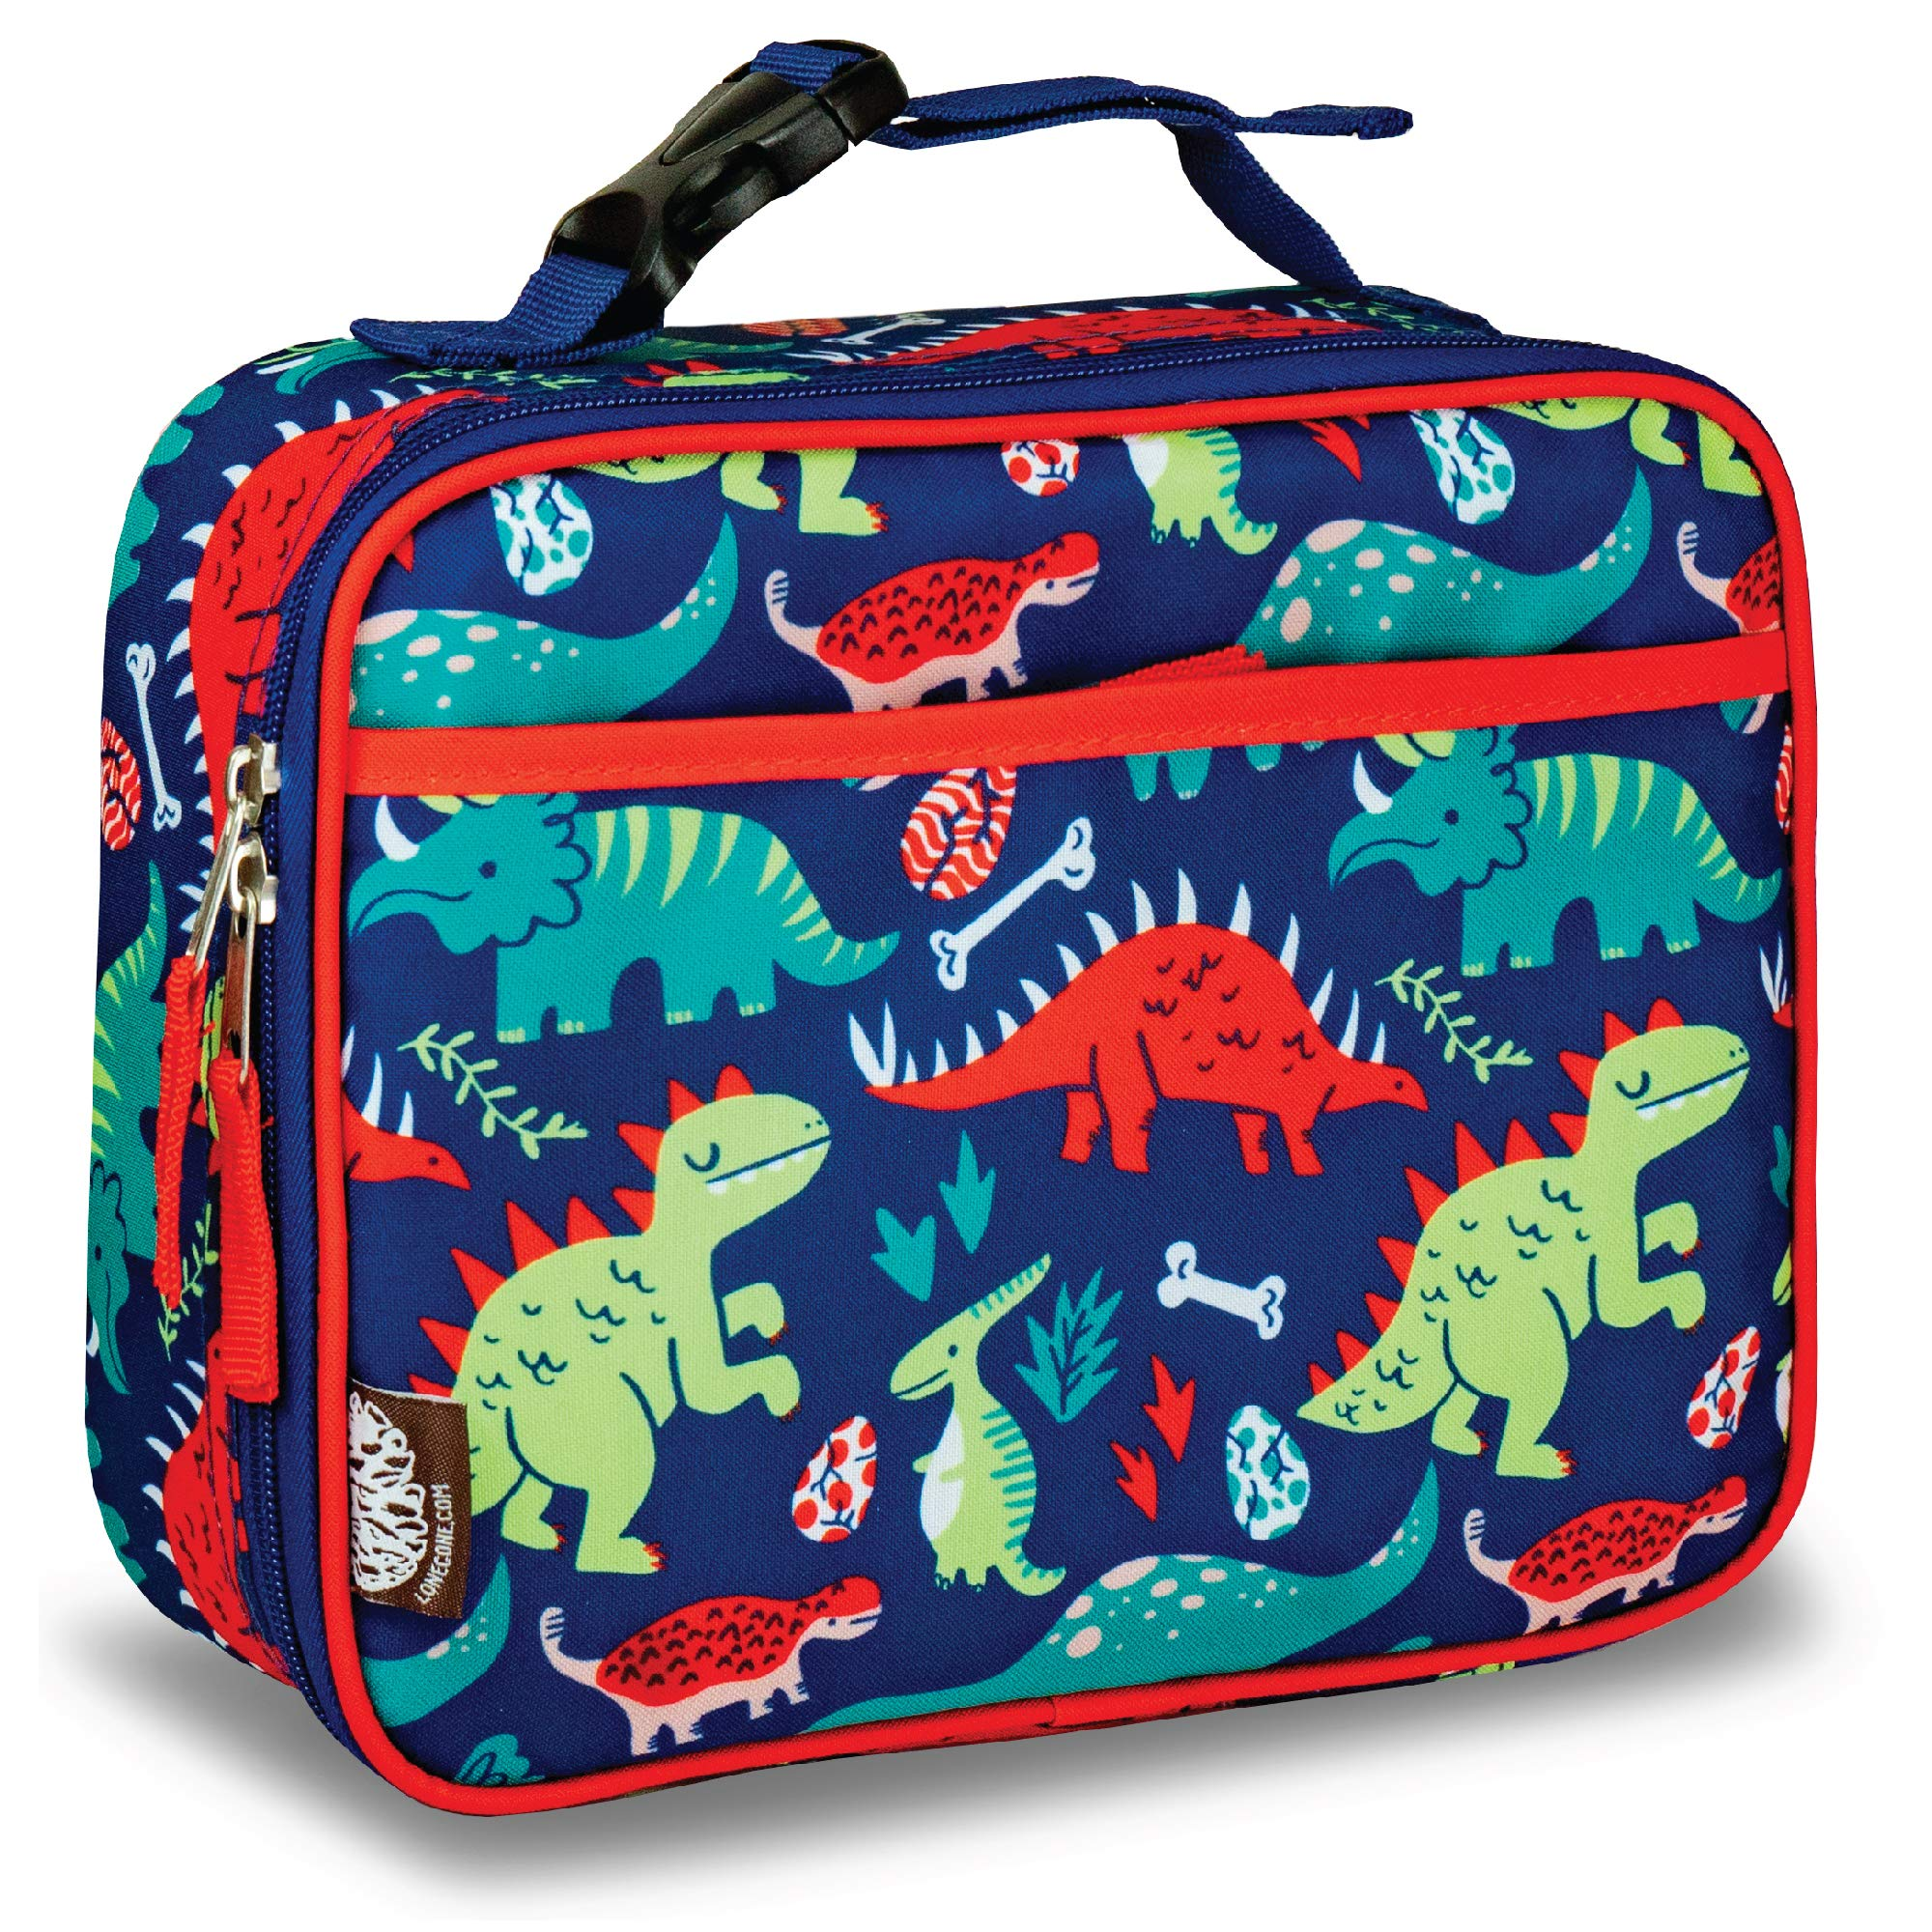 LONECONE Kids' Insulated Lunch Box - Cute Patterns for Boys and Girls, Snack-O-Saurus, Standard with Buckle by LONECONE